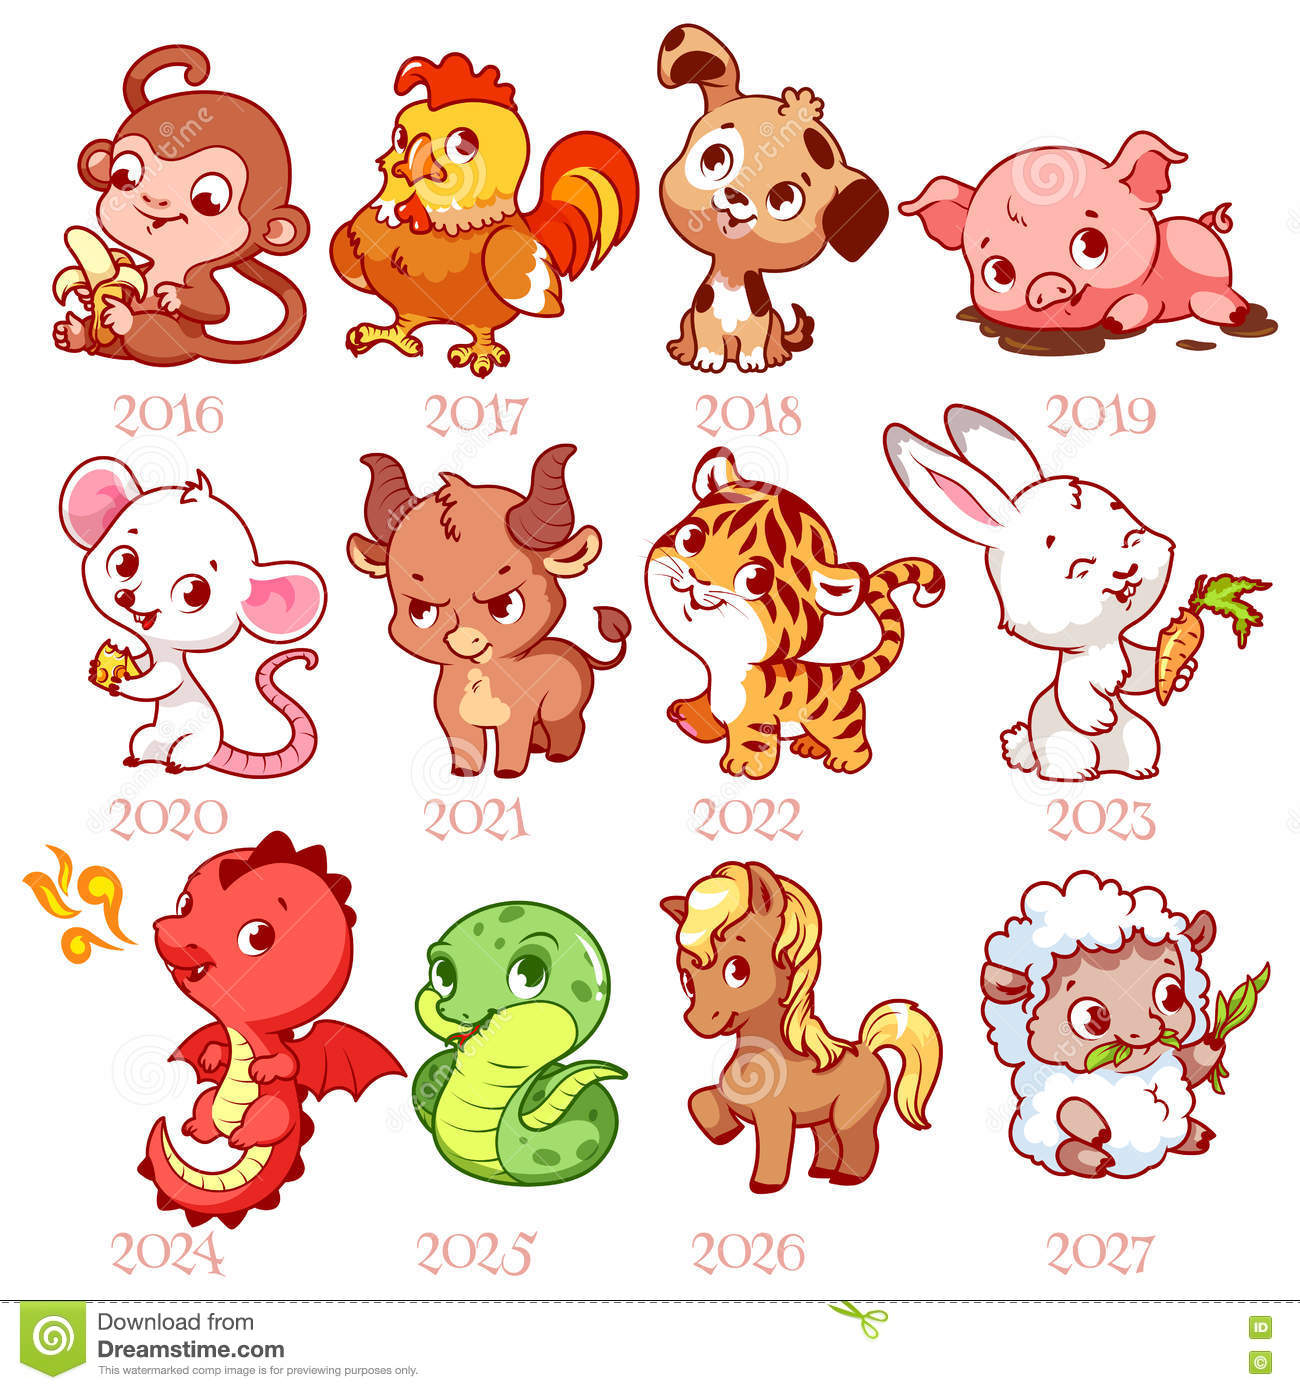 Chinese Zodiac Signs Stock Vector Art & More Images of